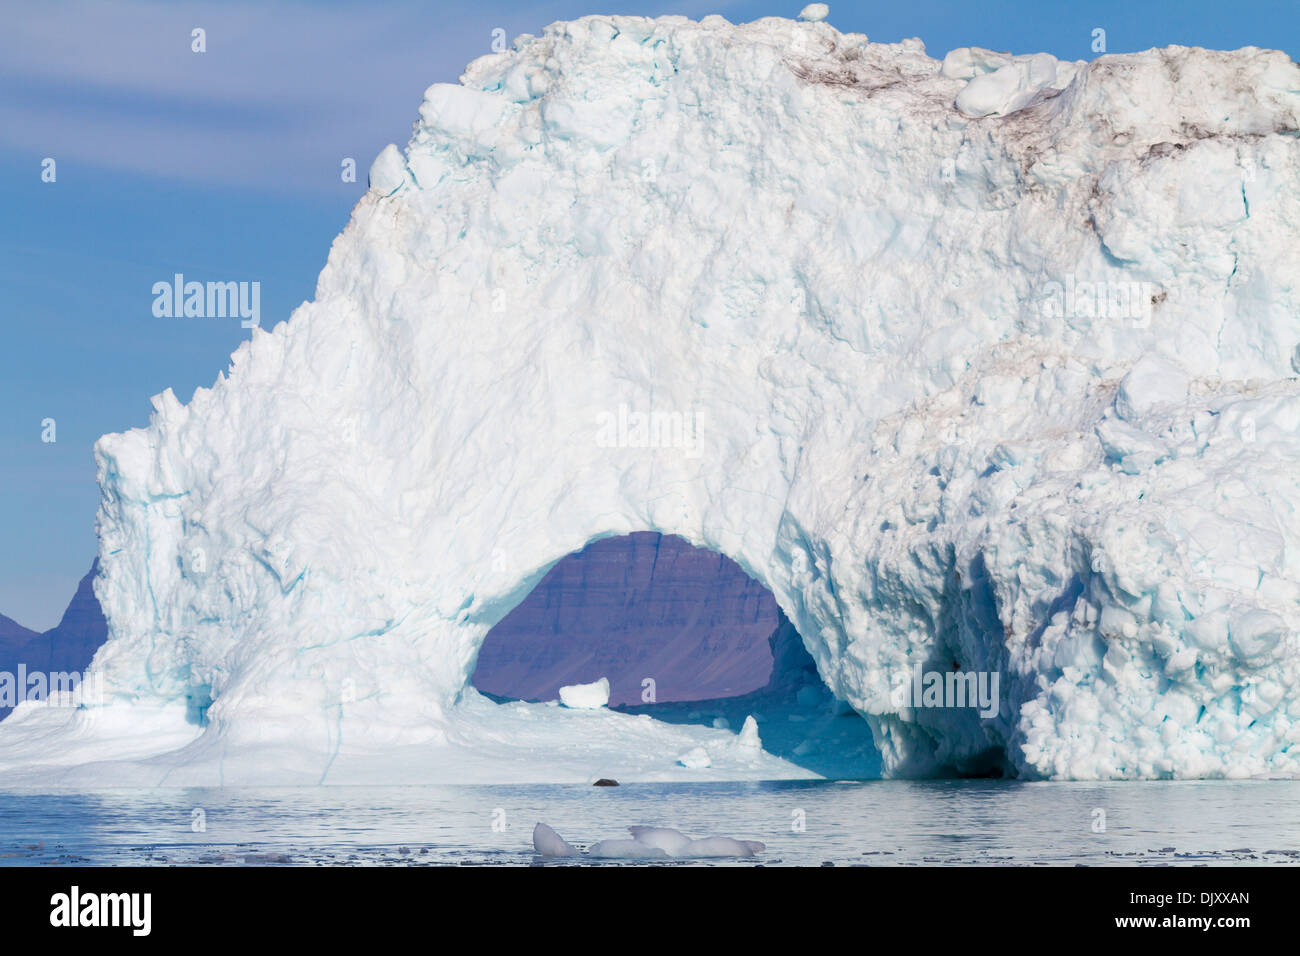 Ice arch on huge iceberg, Fohnfjord, Greenland - Stock Image